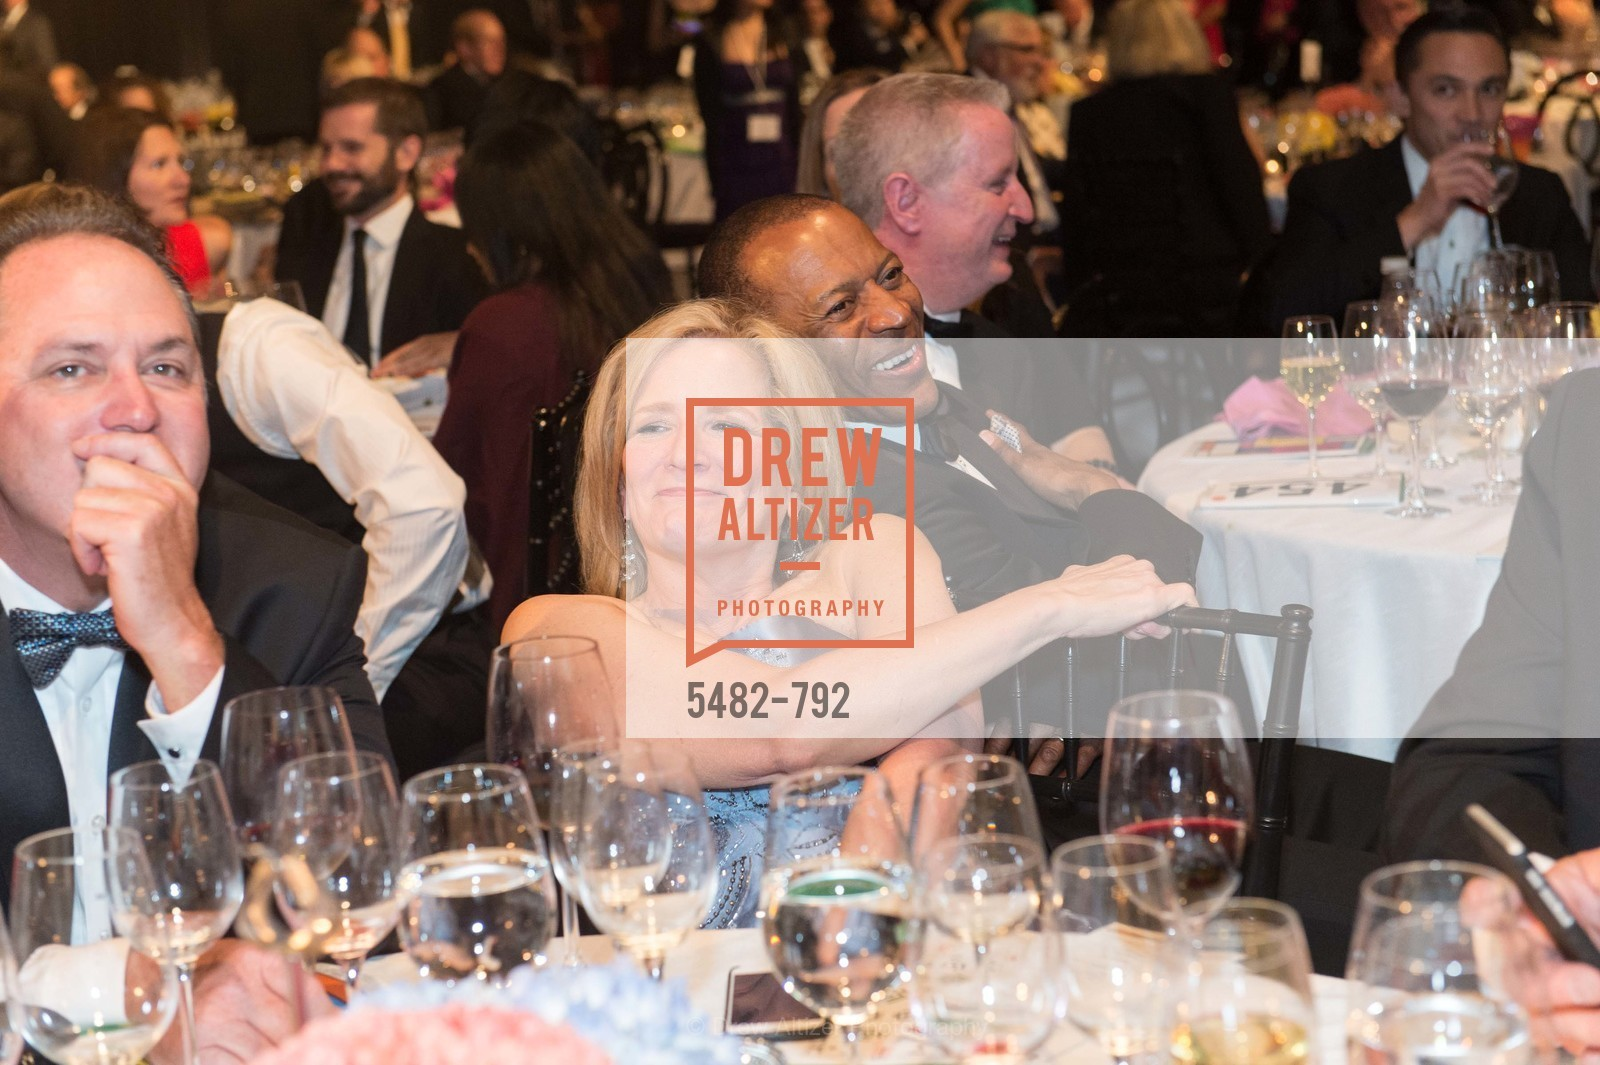 Helen Burt, MEALS ON WHEELS OF SAN FRANCISCO'S 28th Annual Star Chefs and Vintners Gala, US, April 20th, 2015,Drew Altizer, Drew Altizer Photography, full-service agency, private events, San Francisco photographer, photographer california